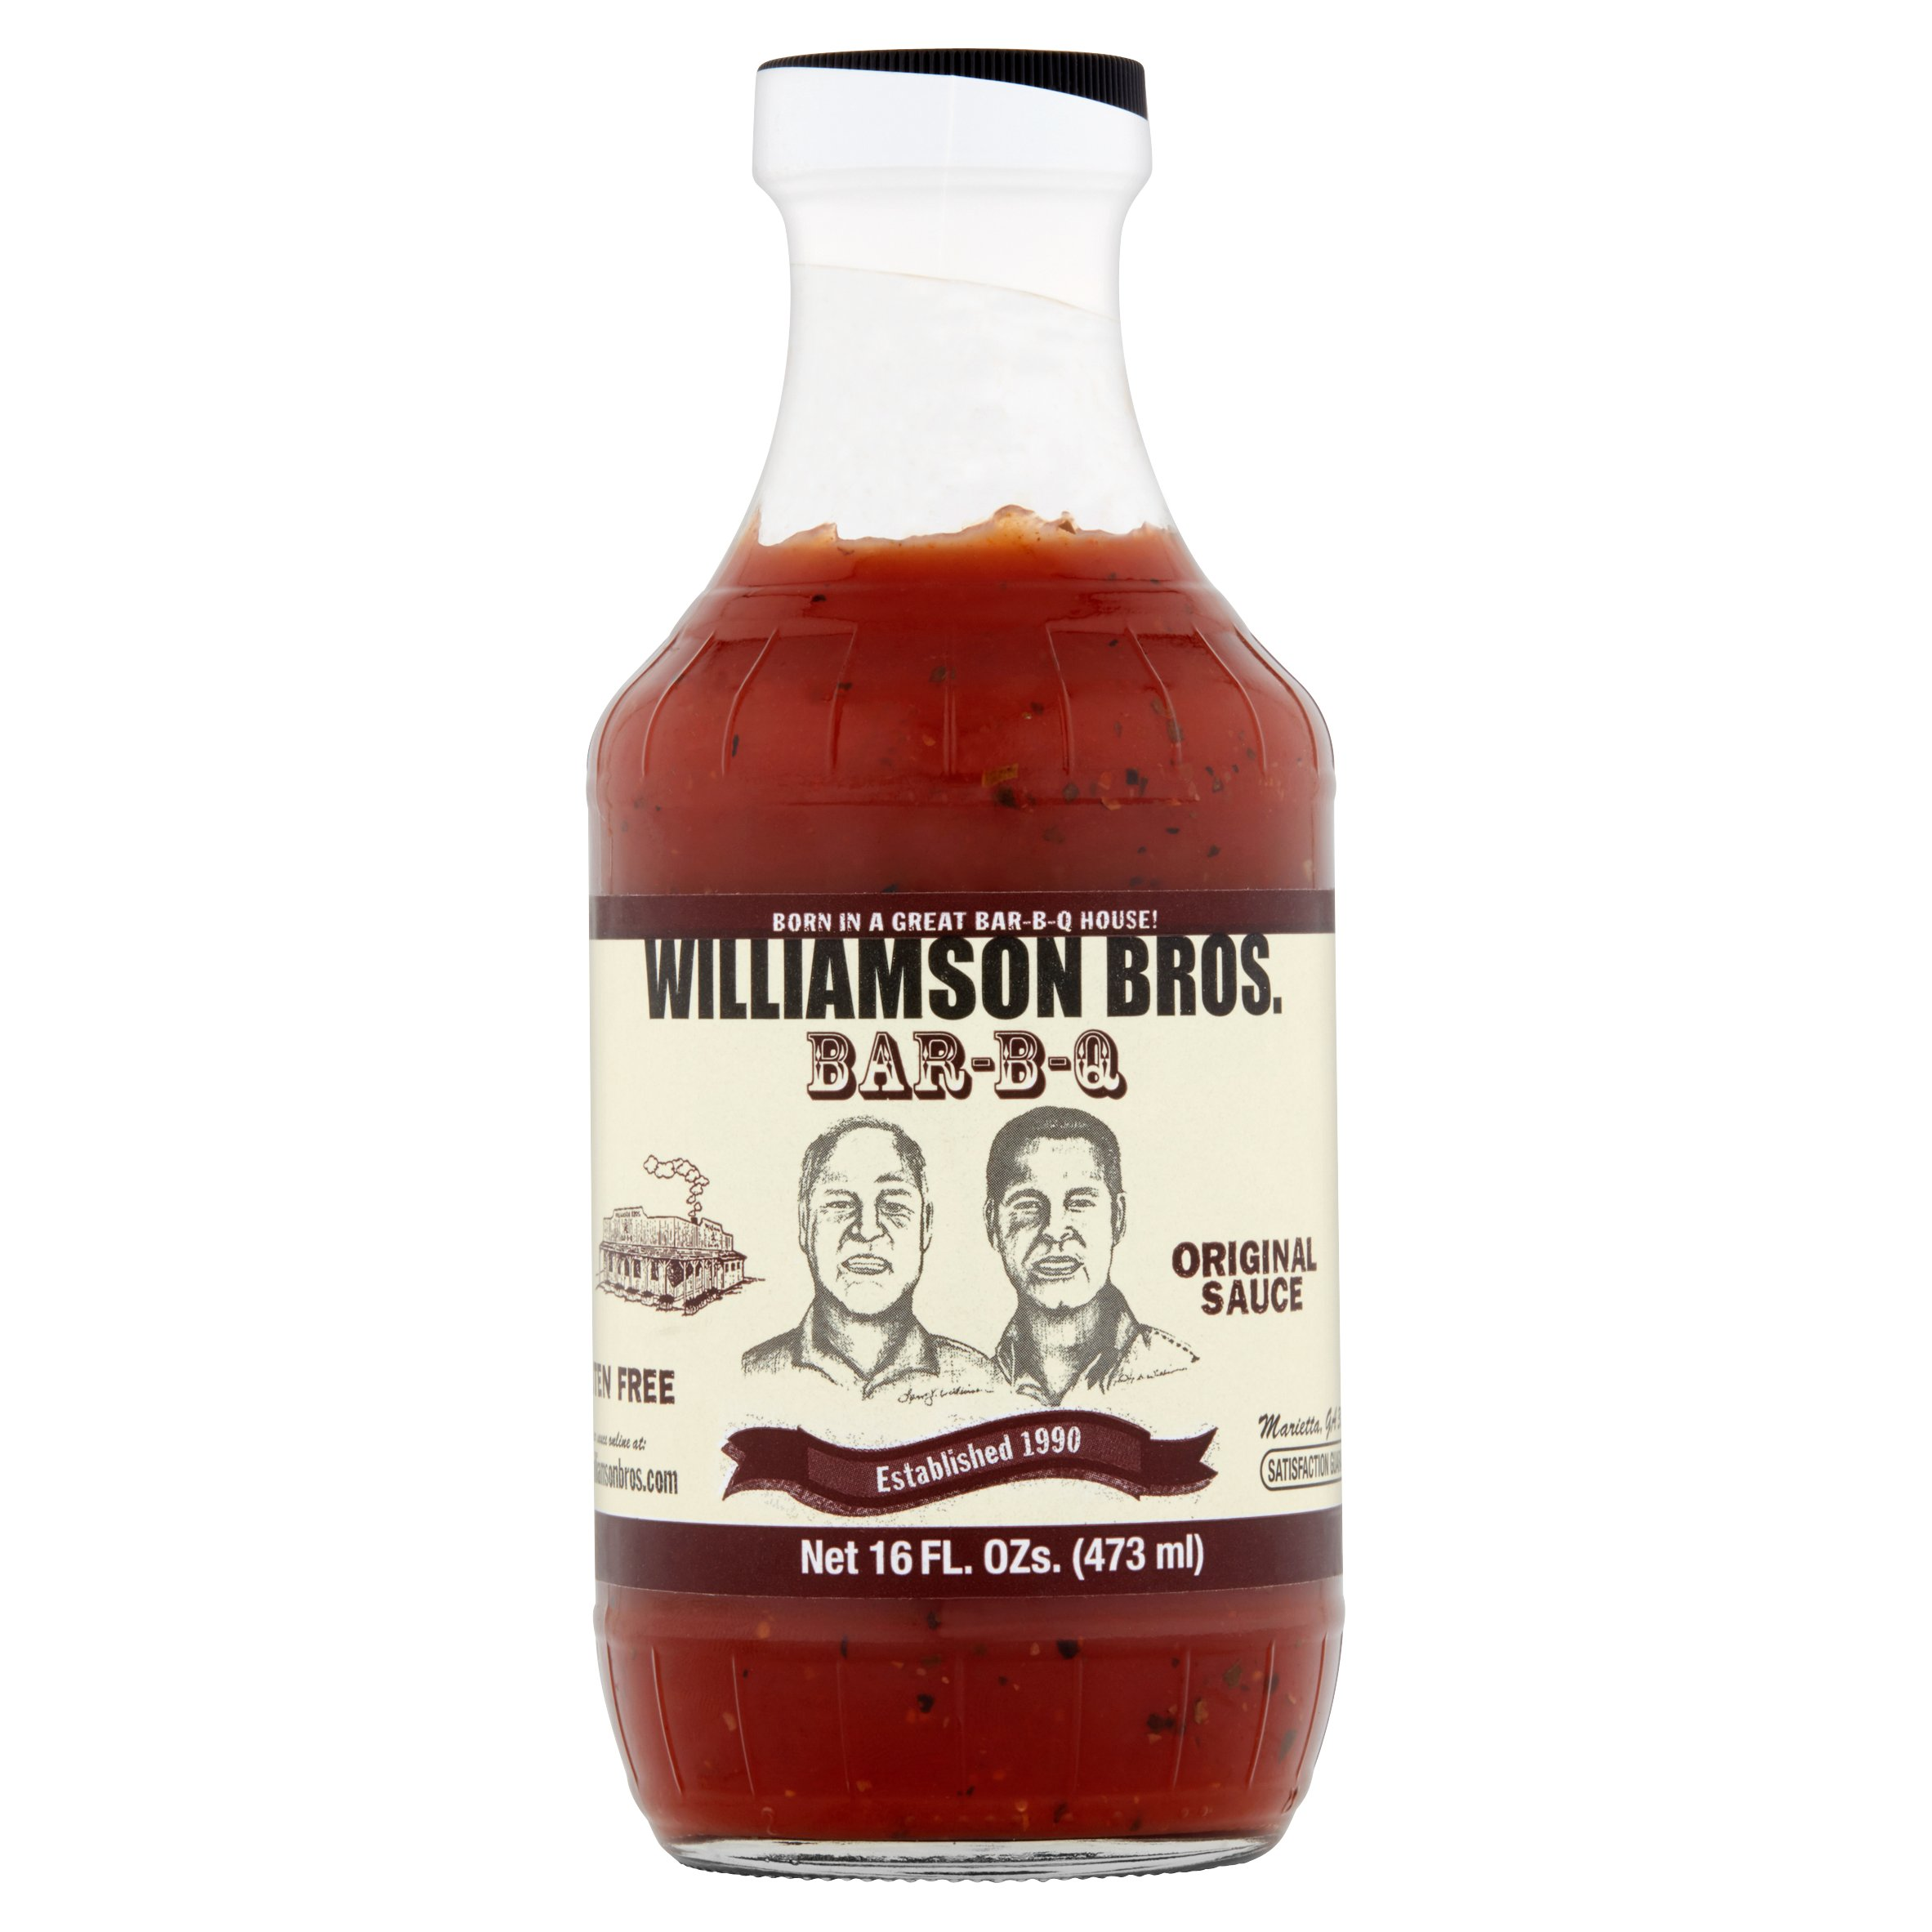 Williamson Bros. Bar-B-Q Original Sauce, 16 fl oz